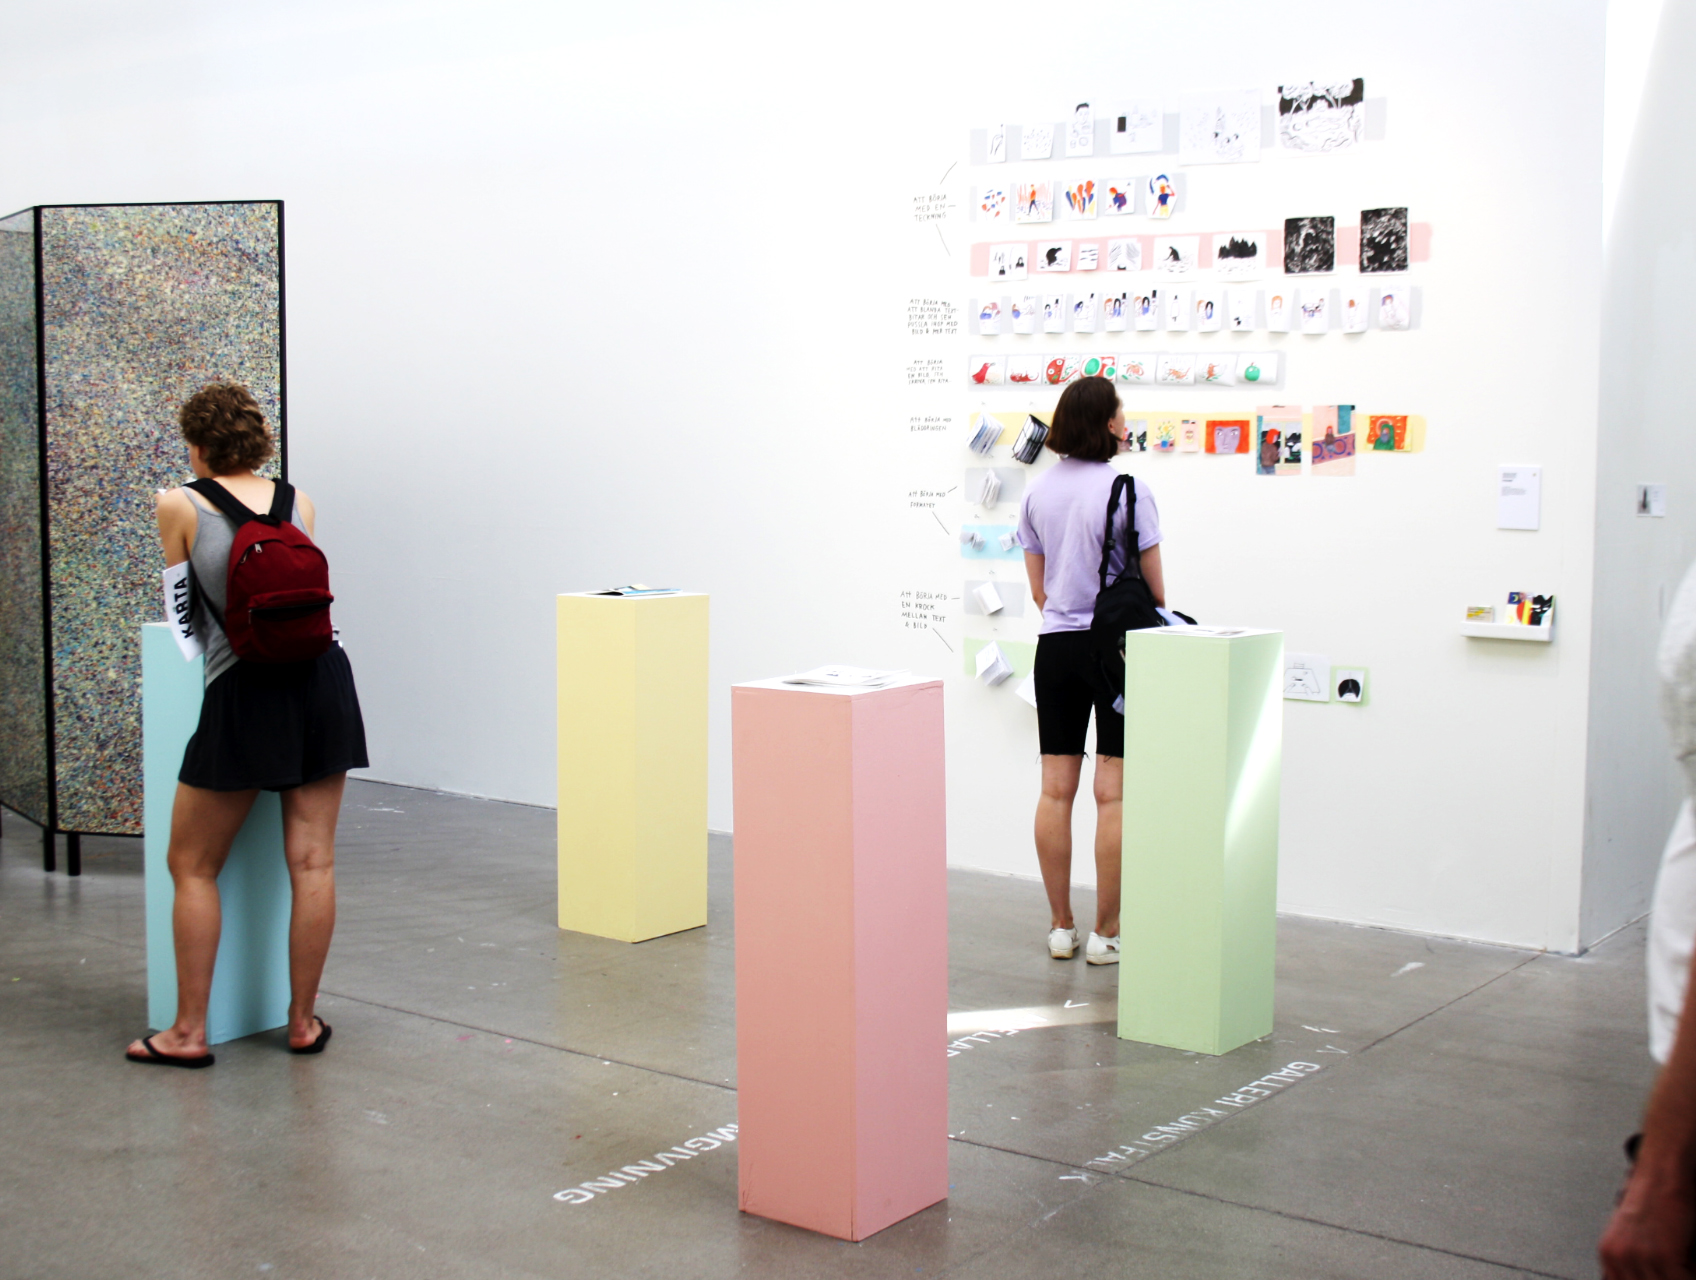 Each book presented on a podium, with a color corresponding with a line on the wall.